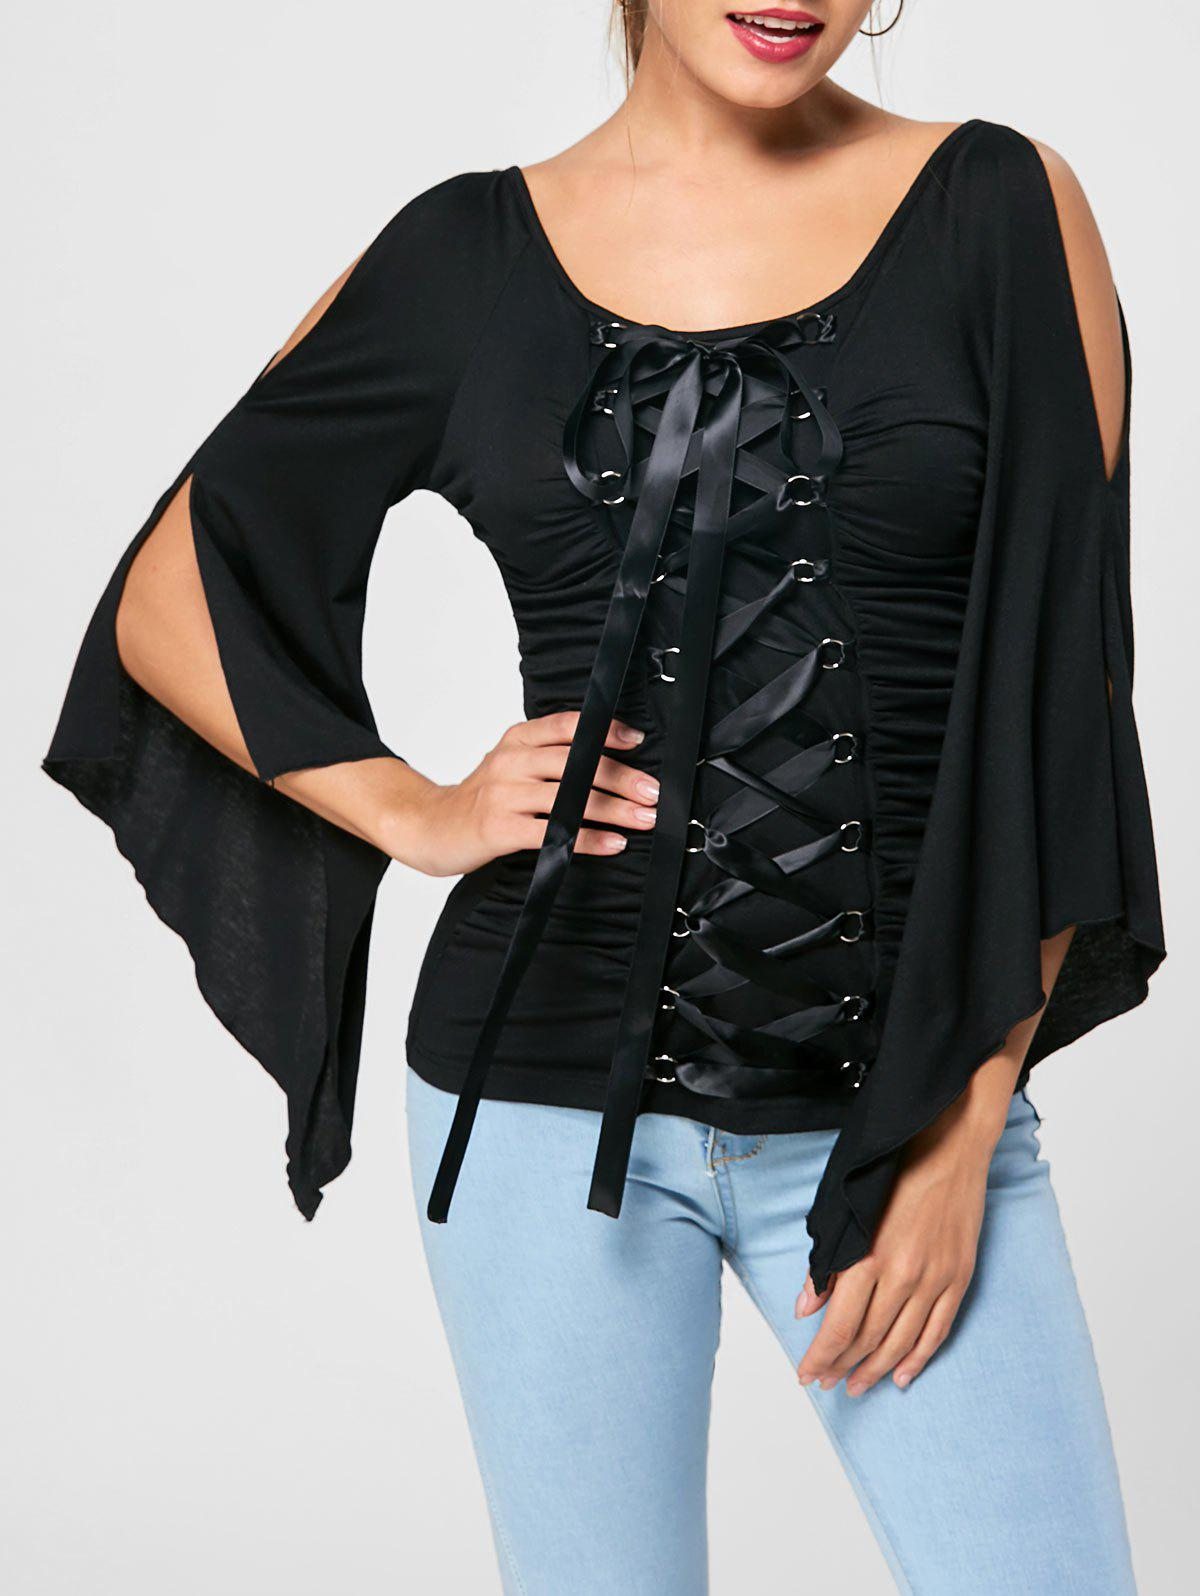 Lace Up Ruched Flare Sleeve TopWOMEN<br><br>Size: L; Color: BLACK; Material: Polyester,Spandex; Shirt Length: Regular; Sleeve Length: Full; Collar: V-Neck; Style: Gothic; Pattern Type: Solid Color; Season: Fall,Spring,Summer; Weight: 0.2800kg; Package Contents: 1 x Top;